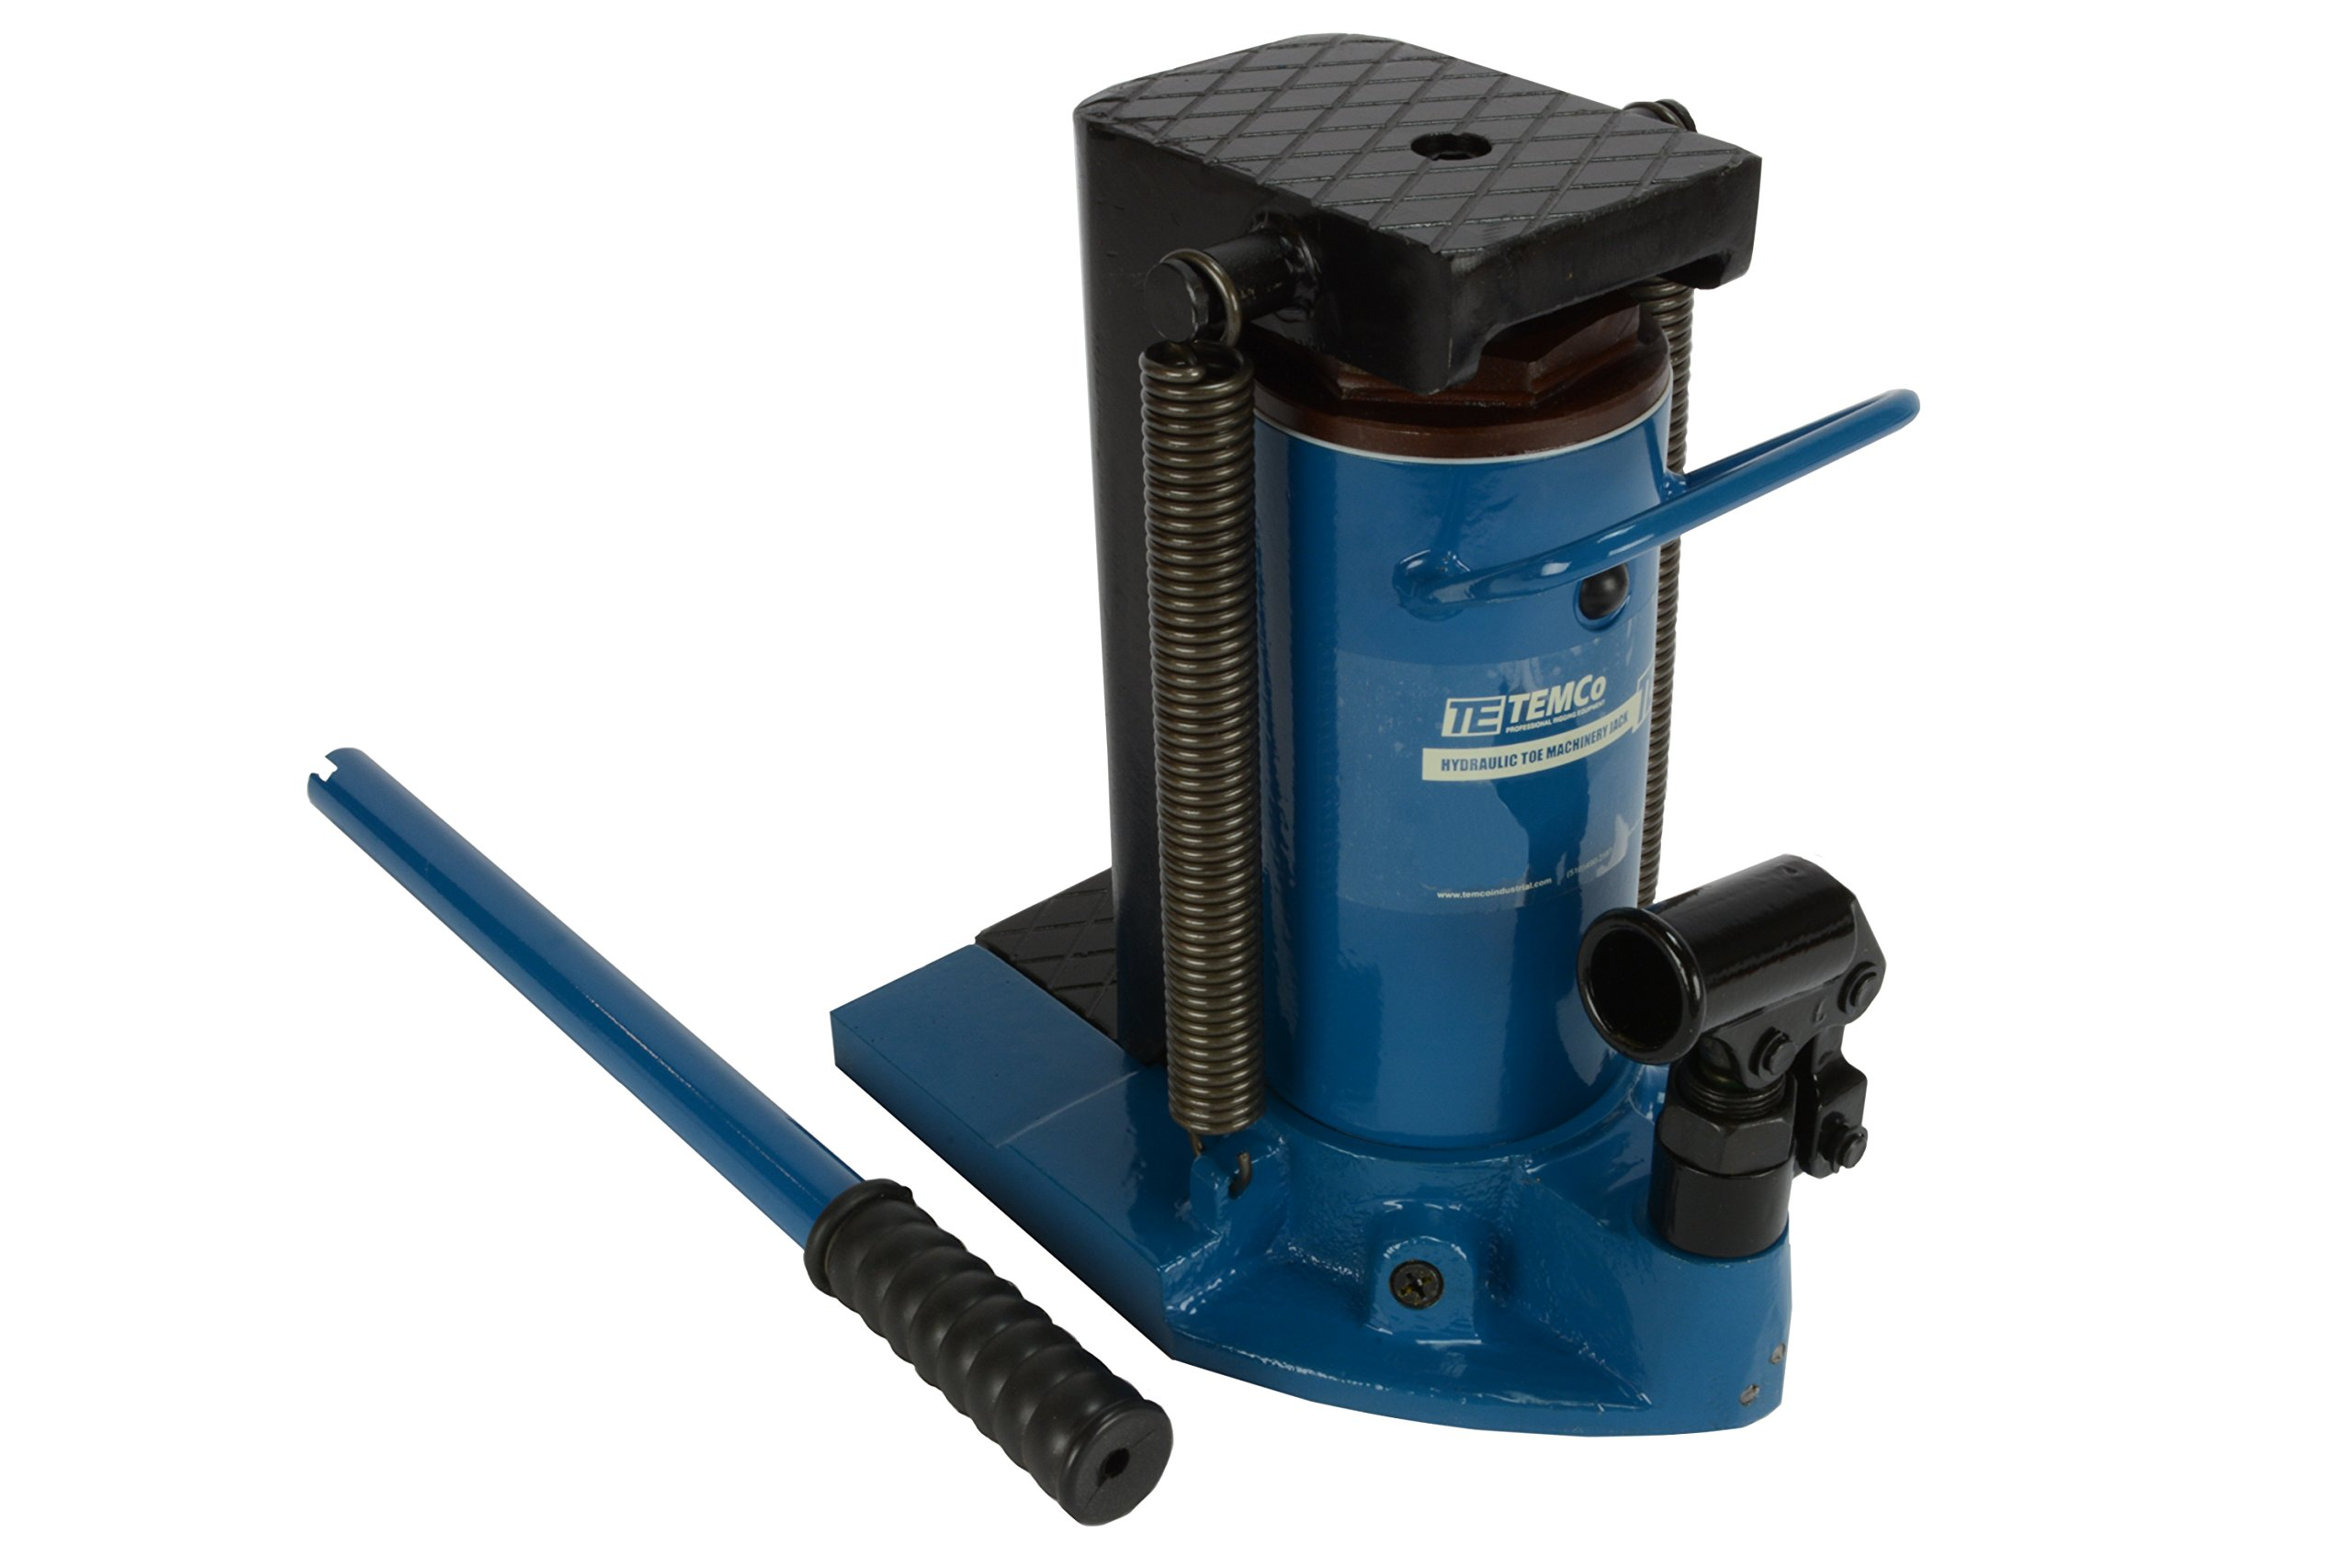 TEMCo TH0025 Hydraulic Machine Toe Jack Lift 2.5 / 5 TON Track 5 YEAR Warranty by Temco